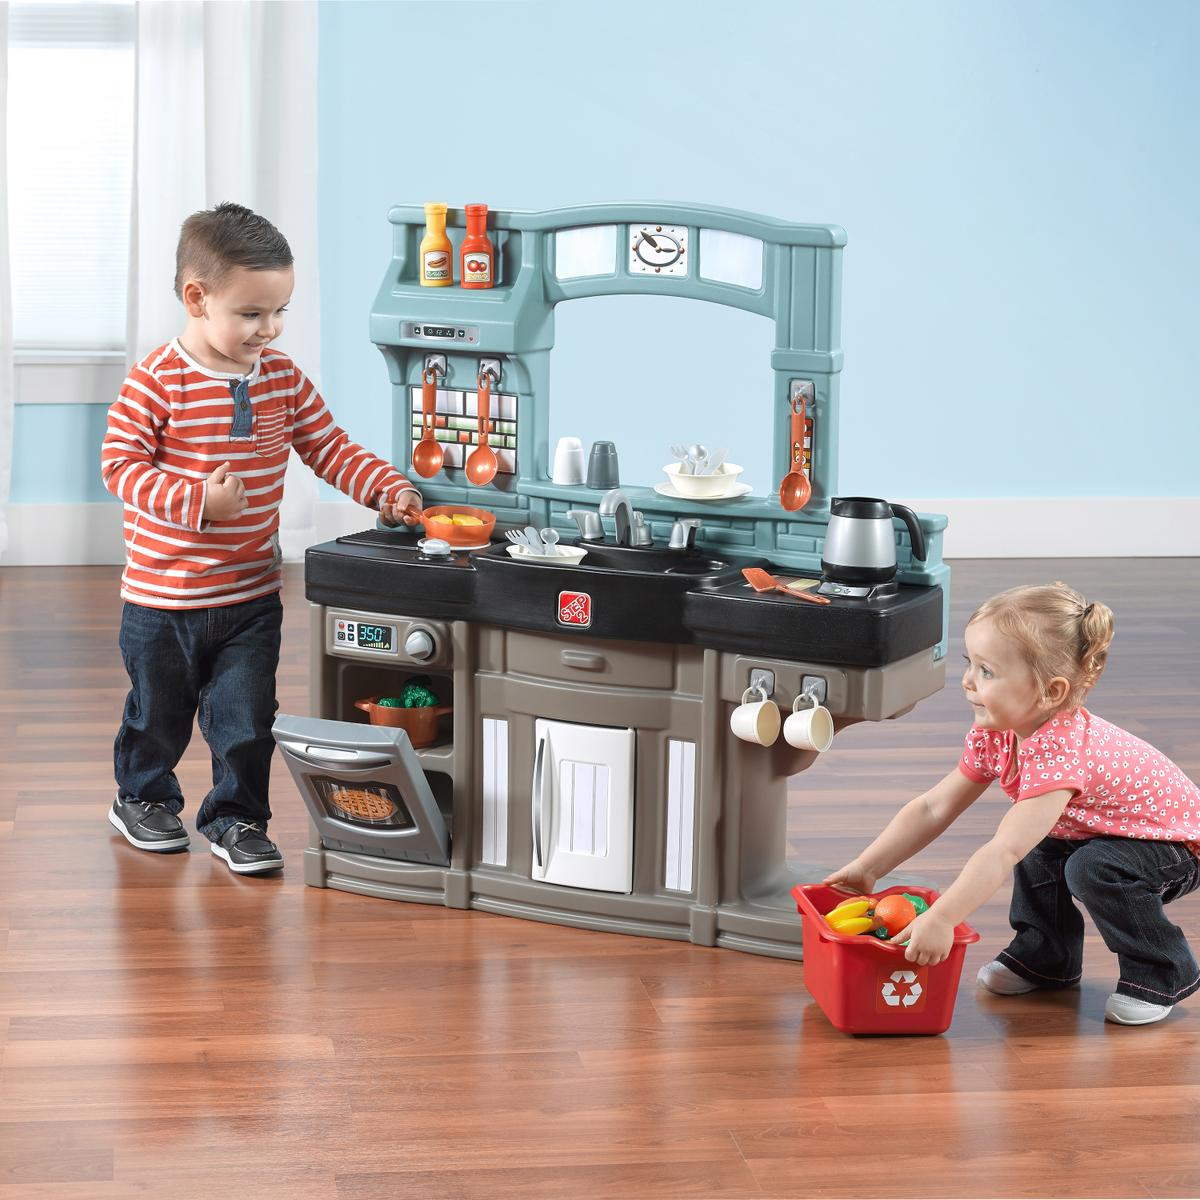 The Best Chef's Kitchen is a compact, interactive kitchen play set for your little chef! * * * #step2parents #Step2Adventures #Step2UK #instababy #step2kids #instakids #toddler #childhoodunplugged #instatoddler #indoorplay #activeplay #letthembelittlepic.twitter.com/lNRIH8G1ho